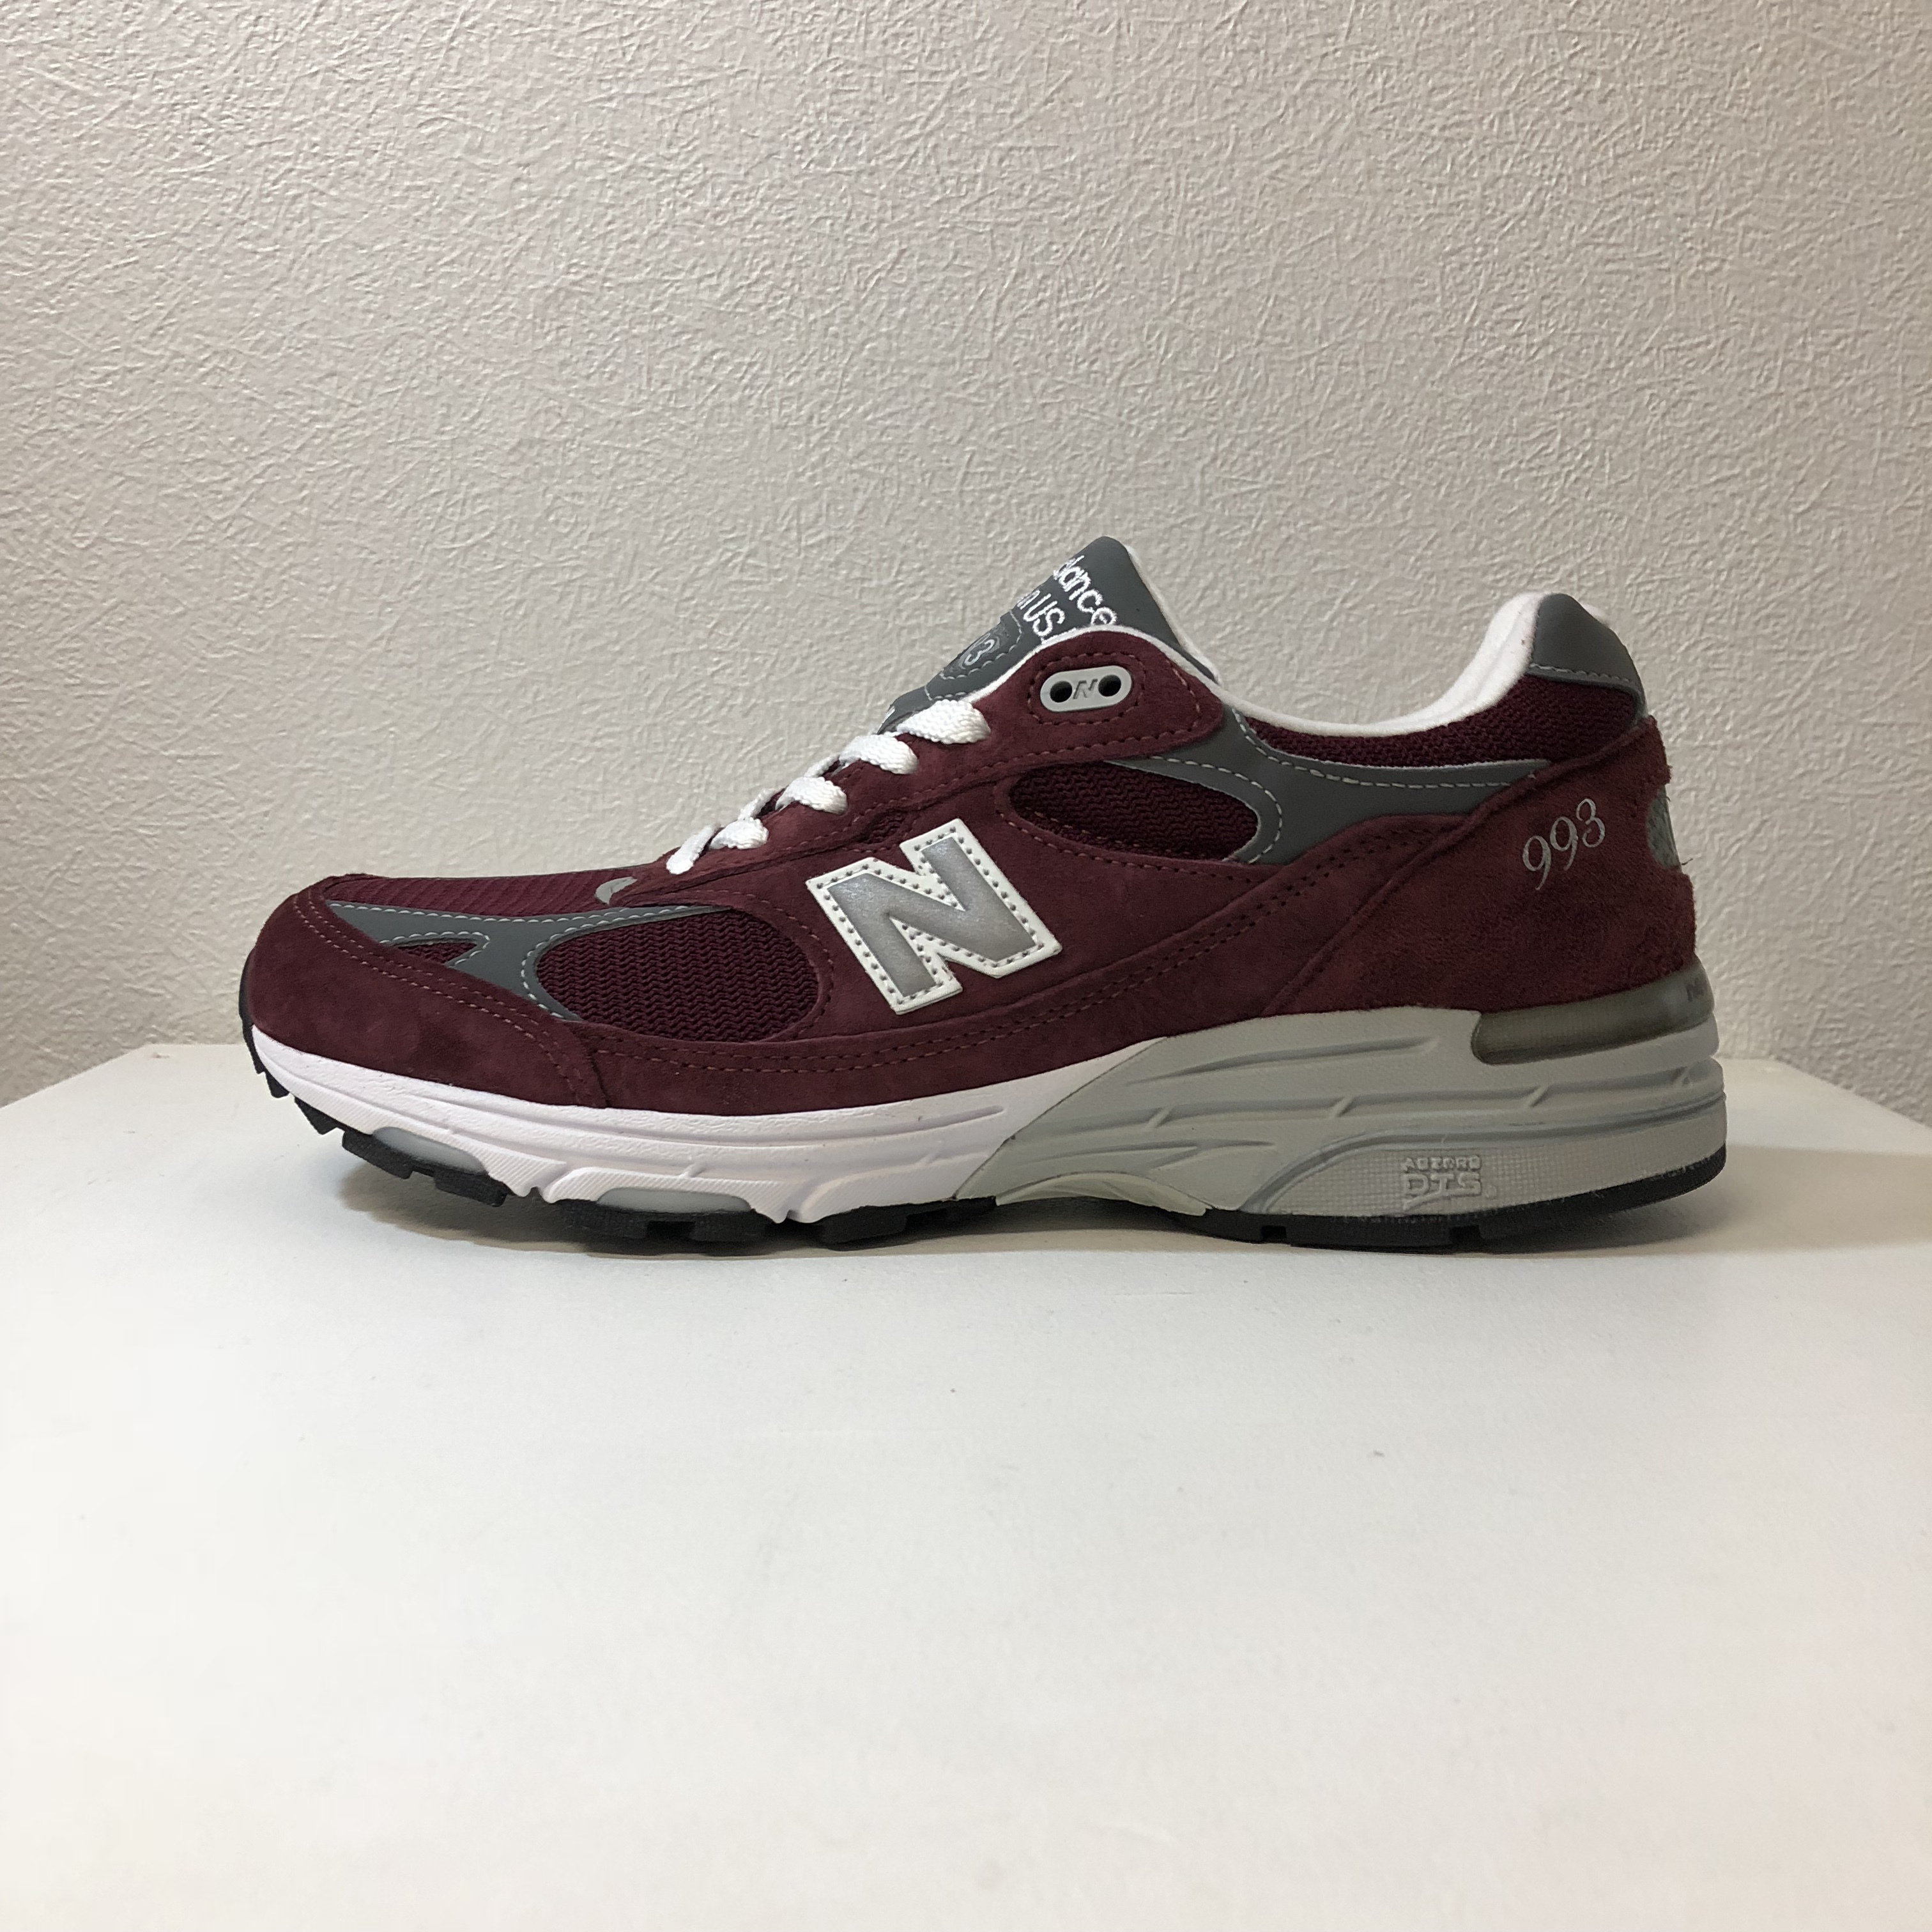 outlet store a5ca5 a0ea7 NEW BALANCE MR993 burgundy USA製 | one day store